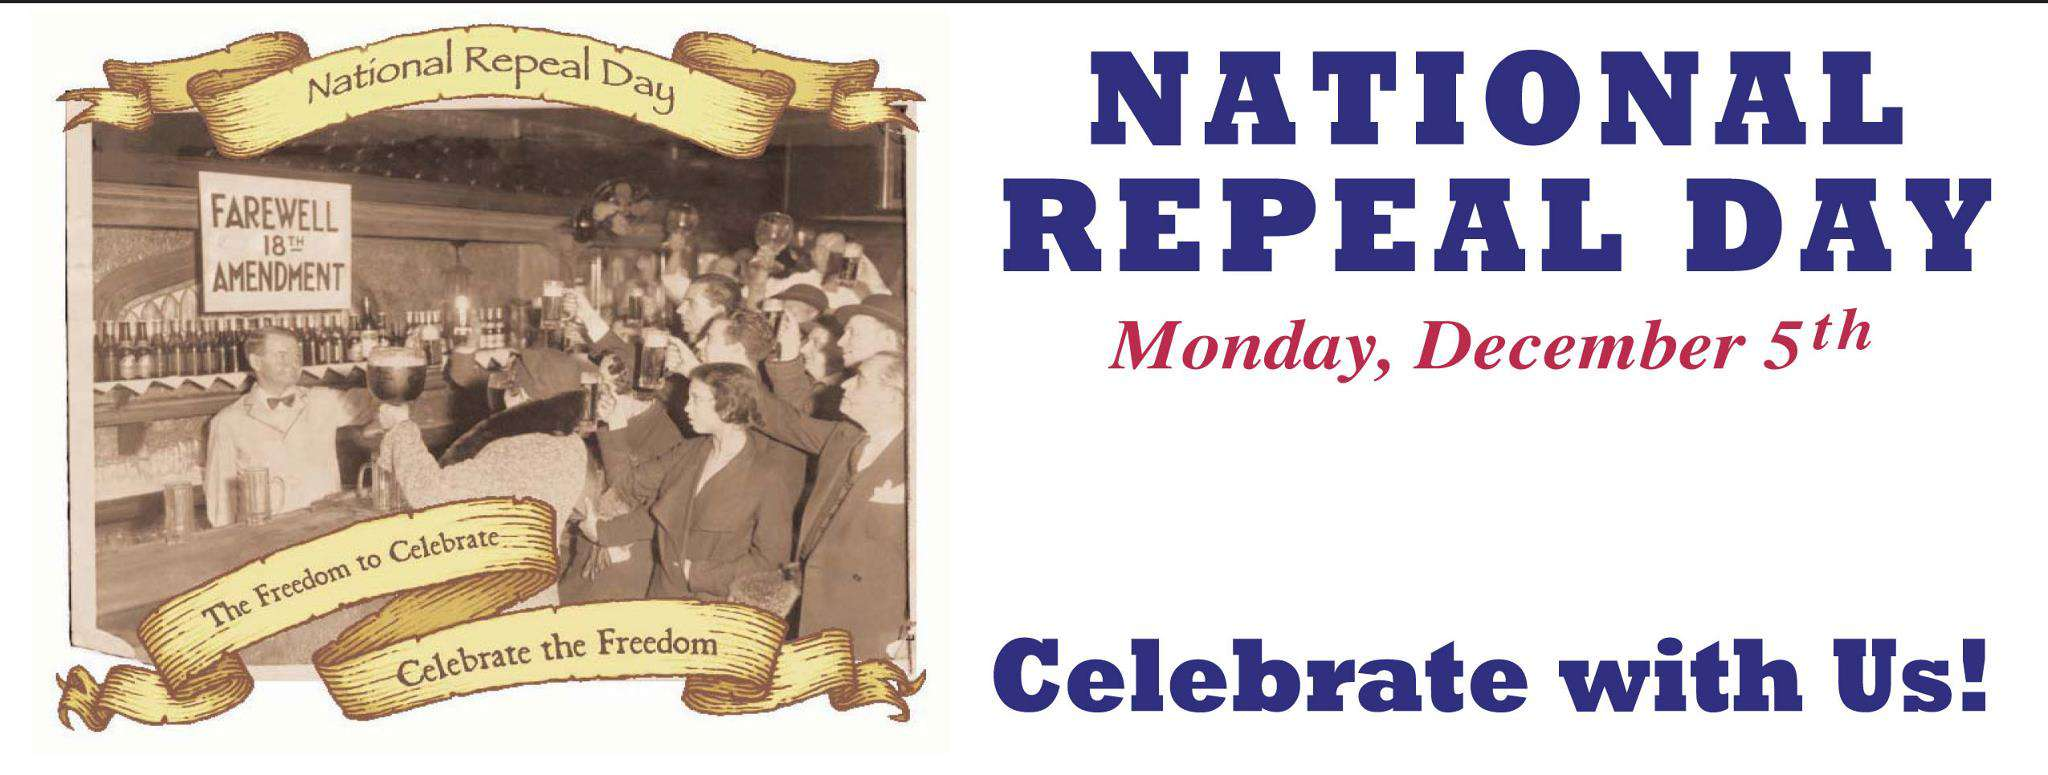 National Repeal Day Wishes Images